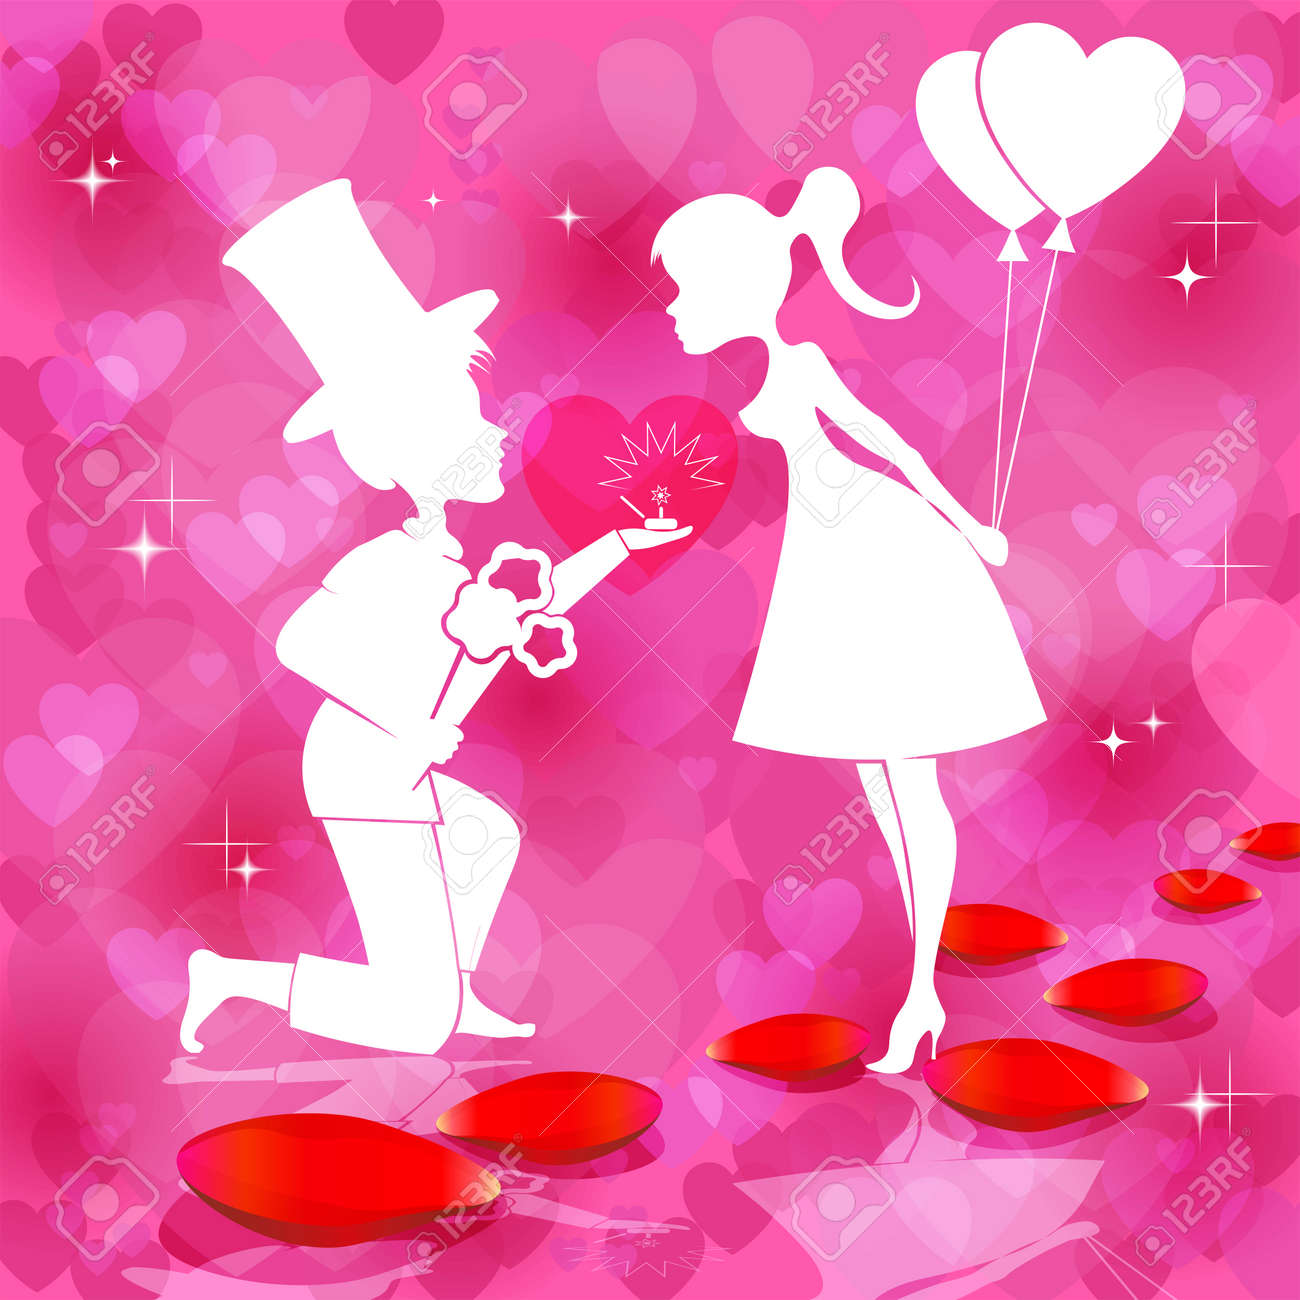 Romantic Red Background With Silhouettes Of Couples In Love ...